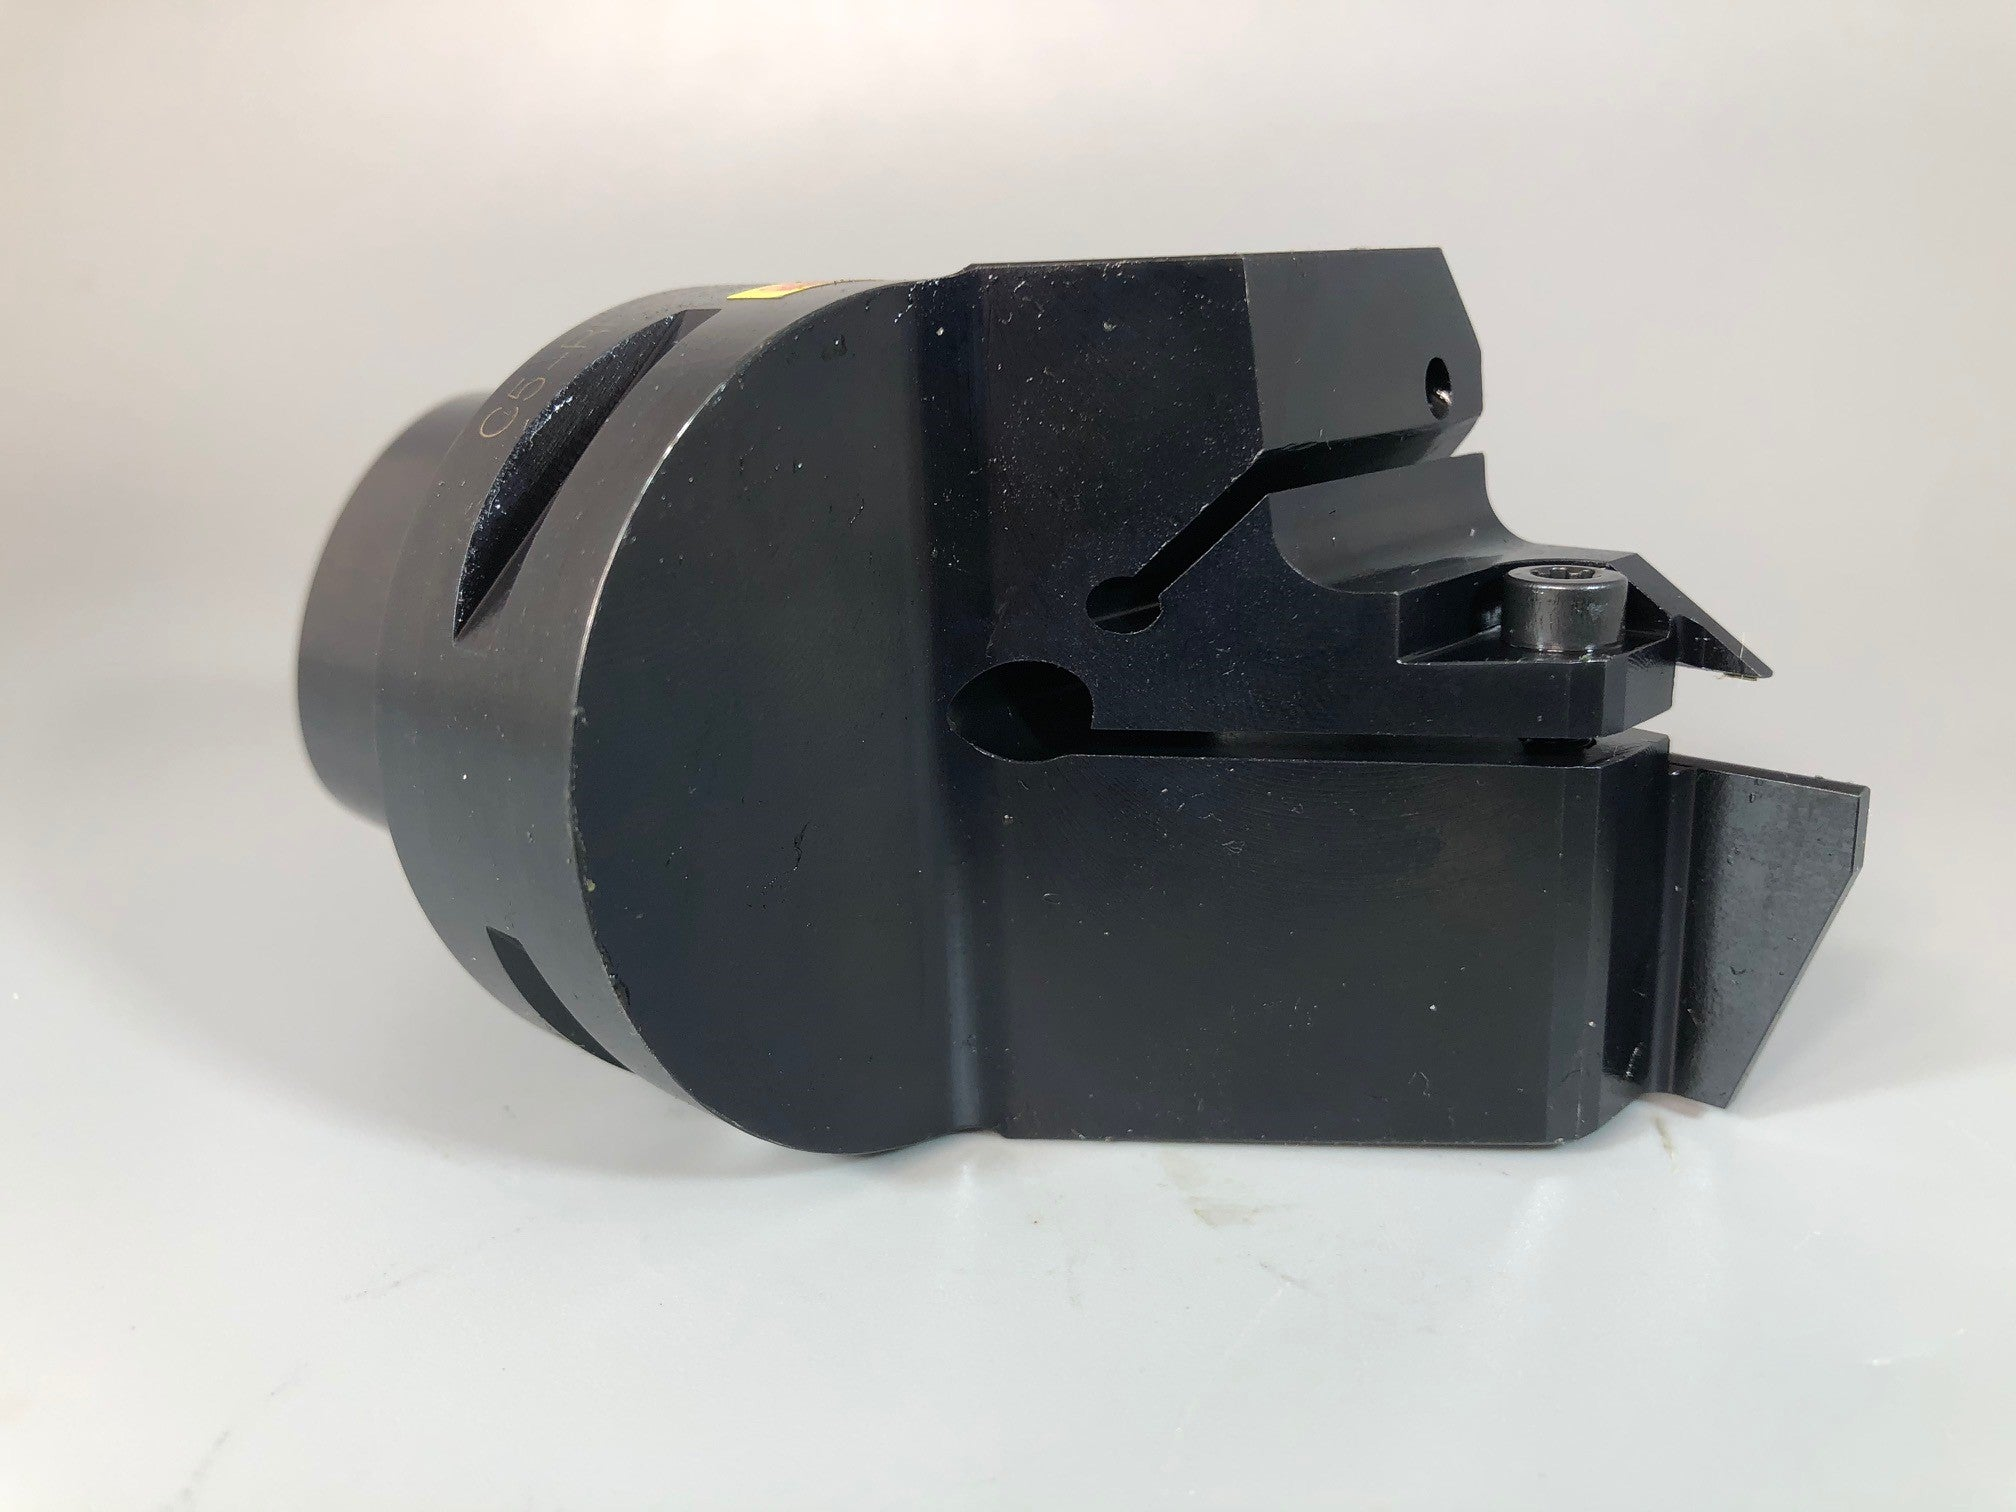 Steel CoroCut 1-2 cutting unit for parting and grooving Left Hand Cut C5-LF123K16-35060B 90 deg Cutting Edge Angle with Coolant Sandvik Coromant